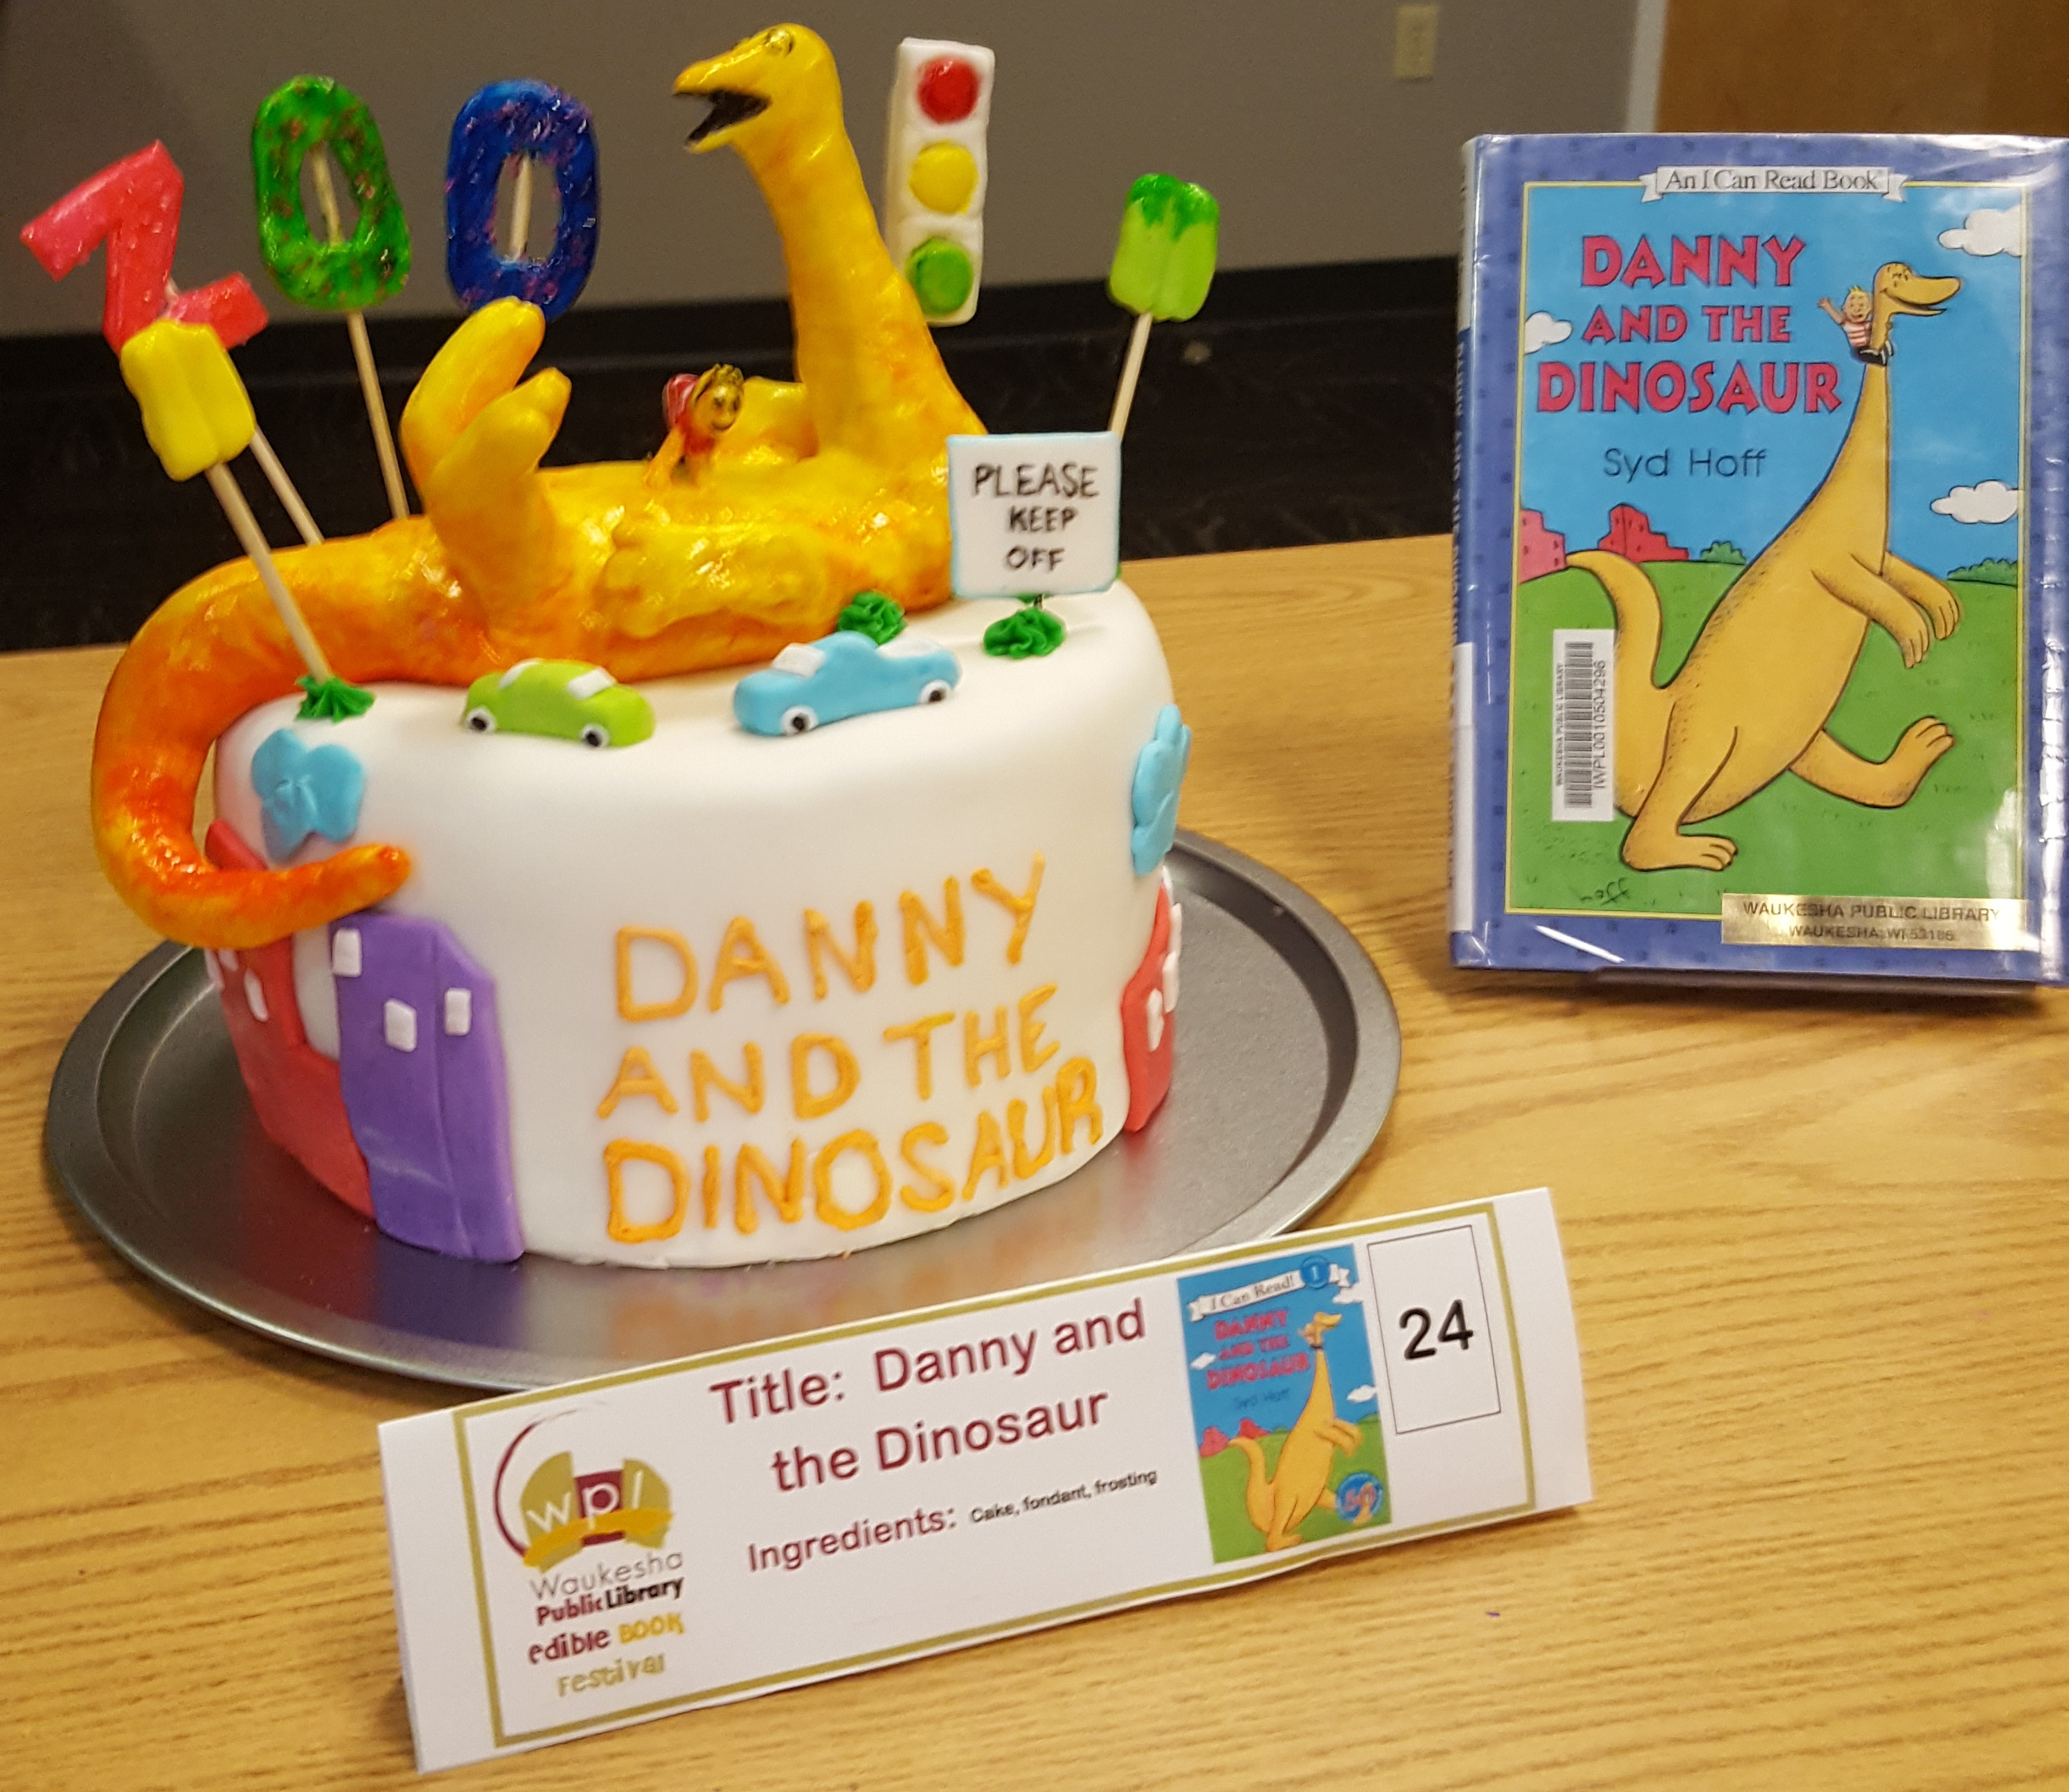 Most Likely to be Eaten: Danny and the Dinosaur by Dakota Diaz with Chance, Sailor, and Luke.